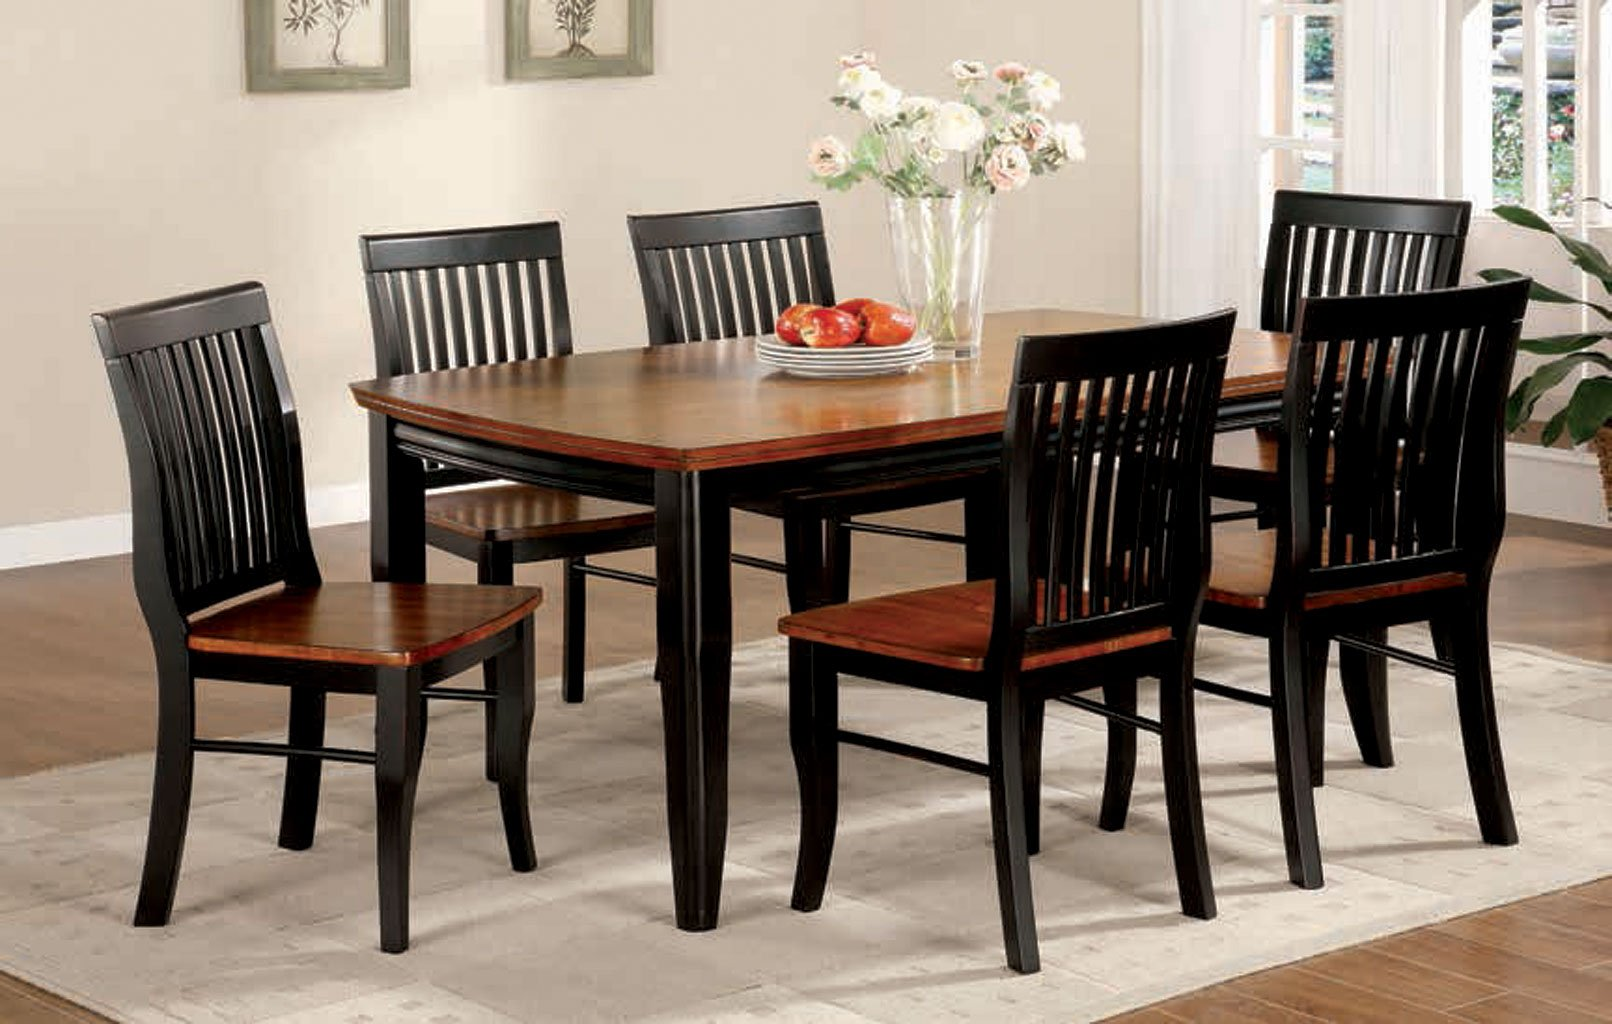 b8405780f960 Earlham Dining Room Set by Furniture of America